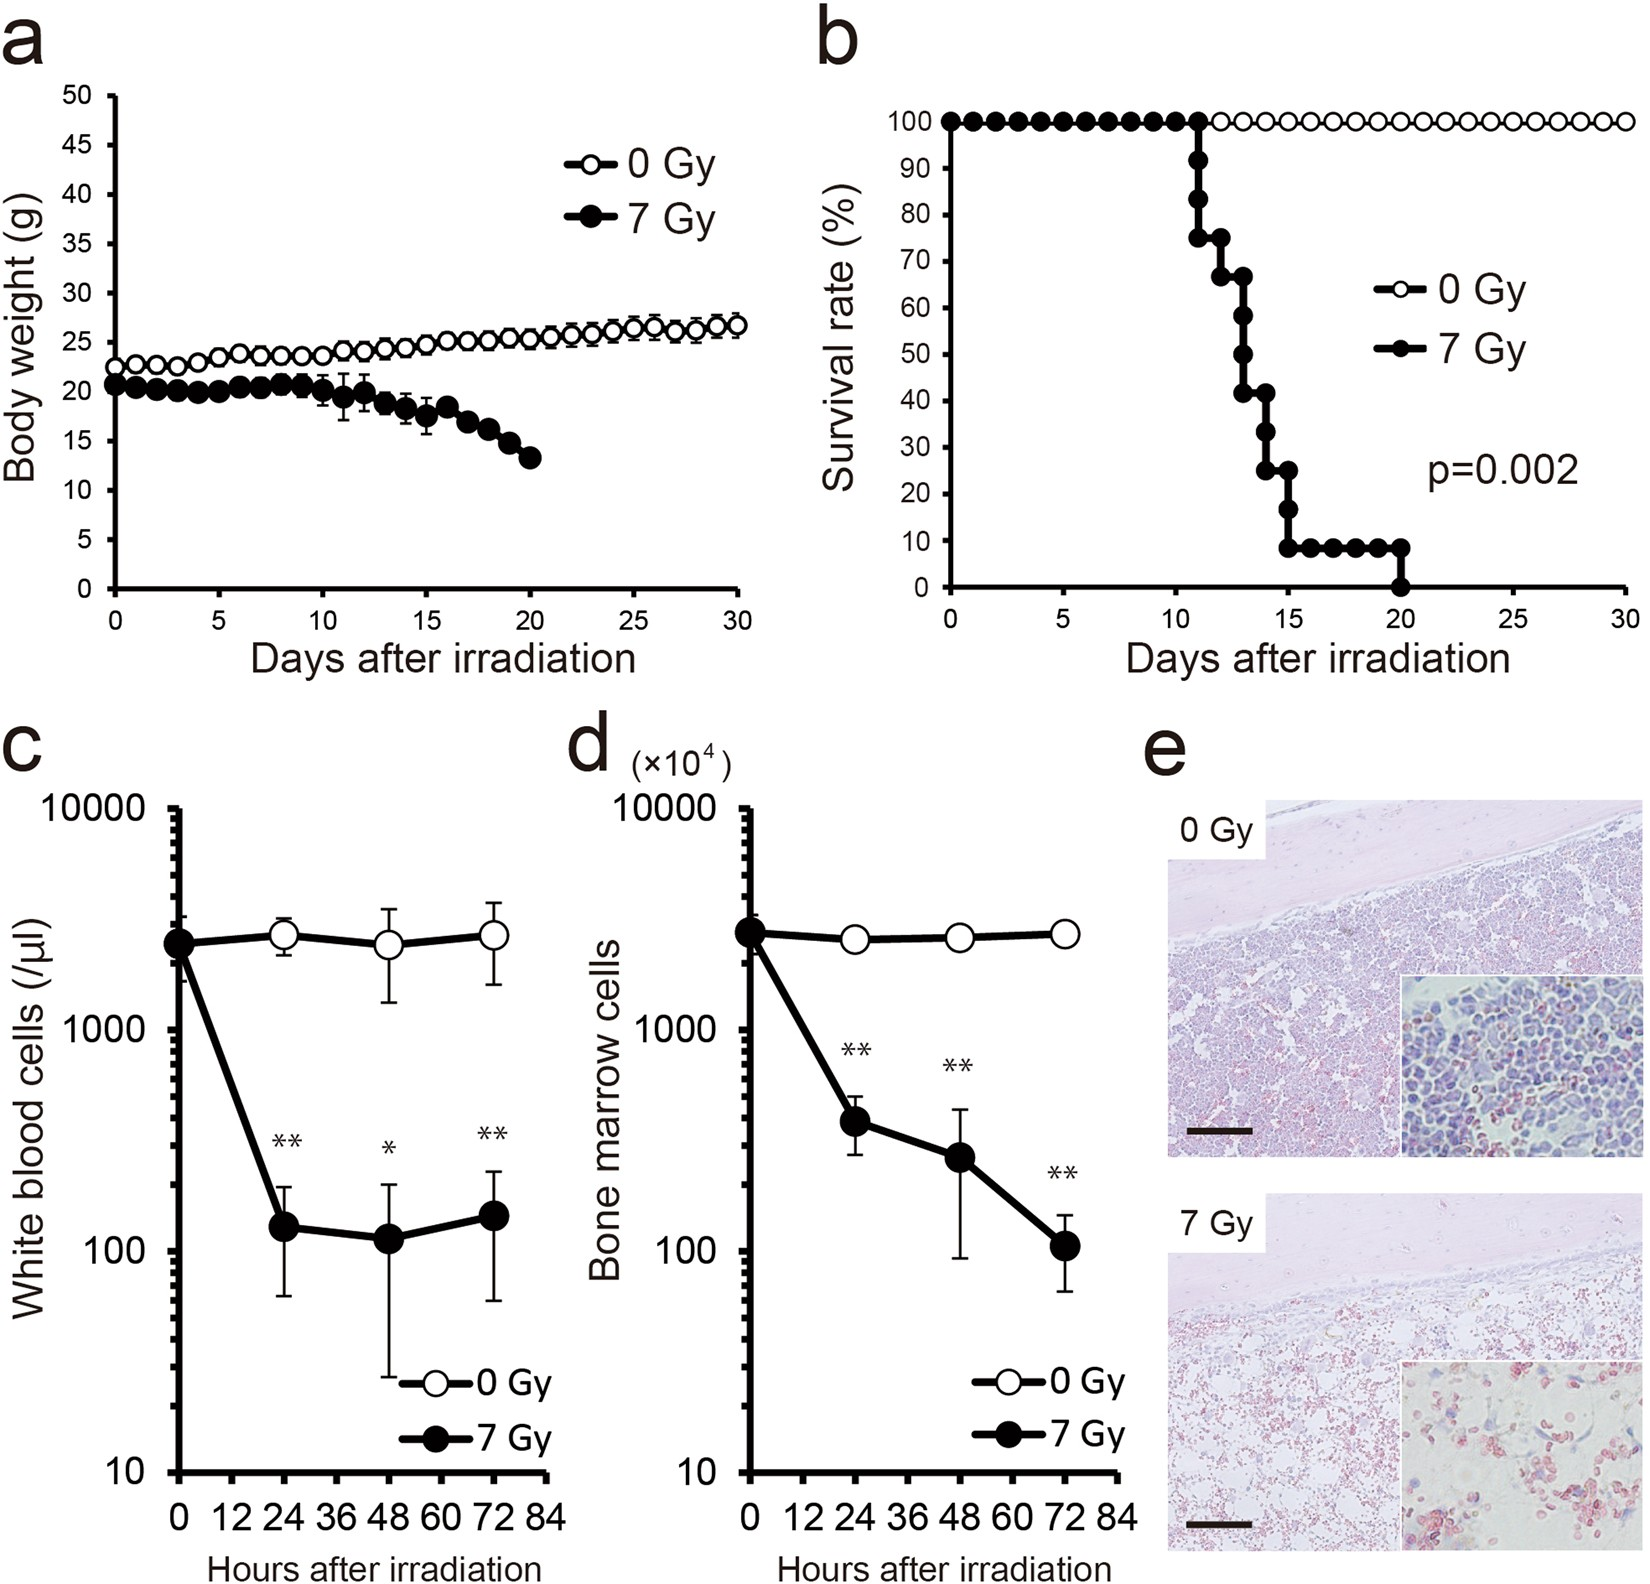 Serum miR-375-3p increase in mice exposed to a high dose of ionizing